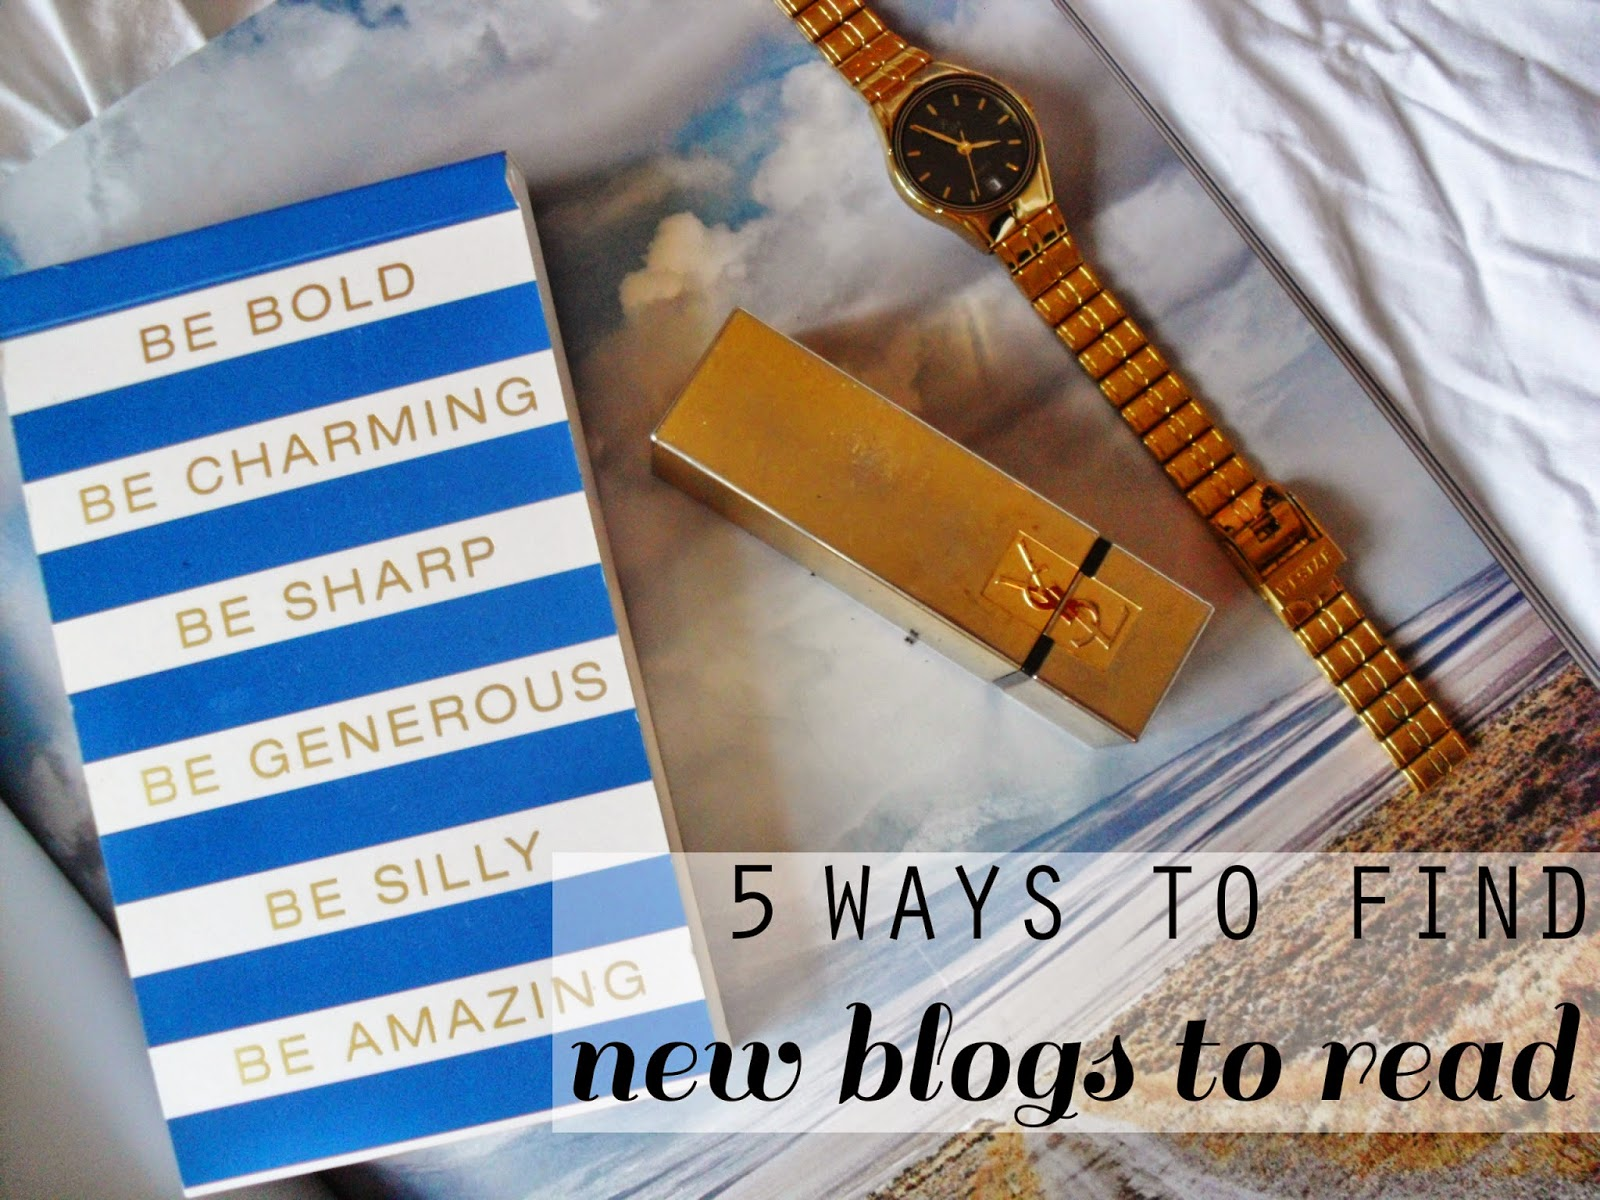 5 Ways To Find New Blogs To Read (and attract new blog readers for your own blog too!)